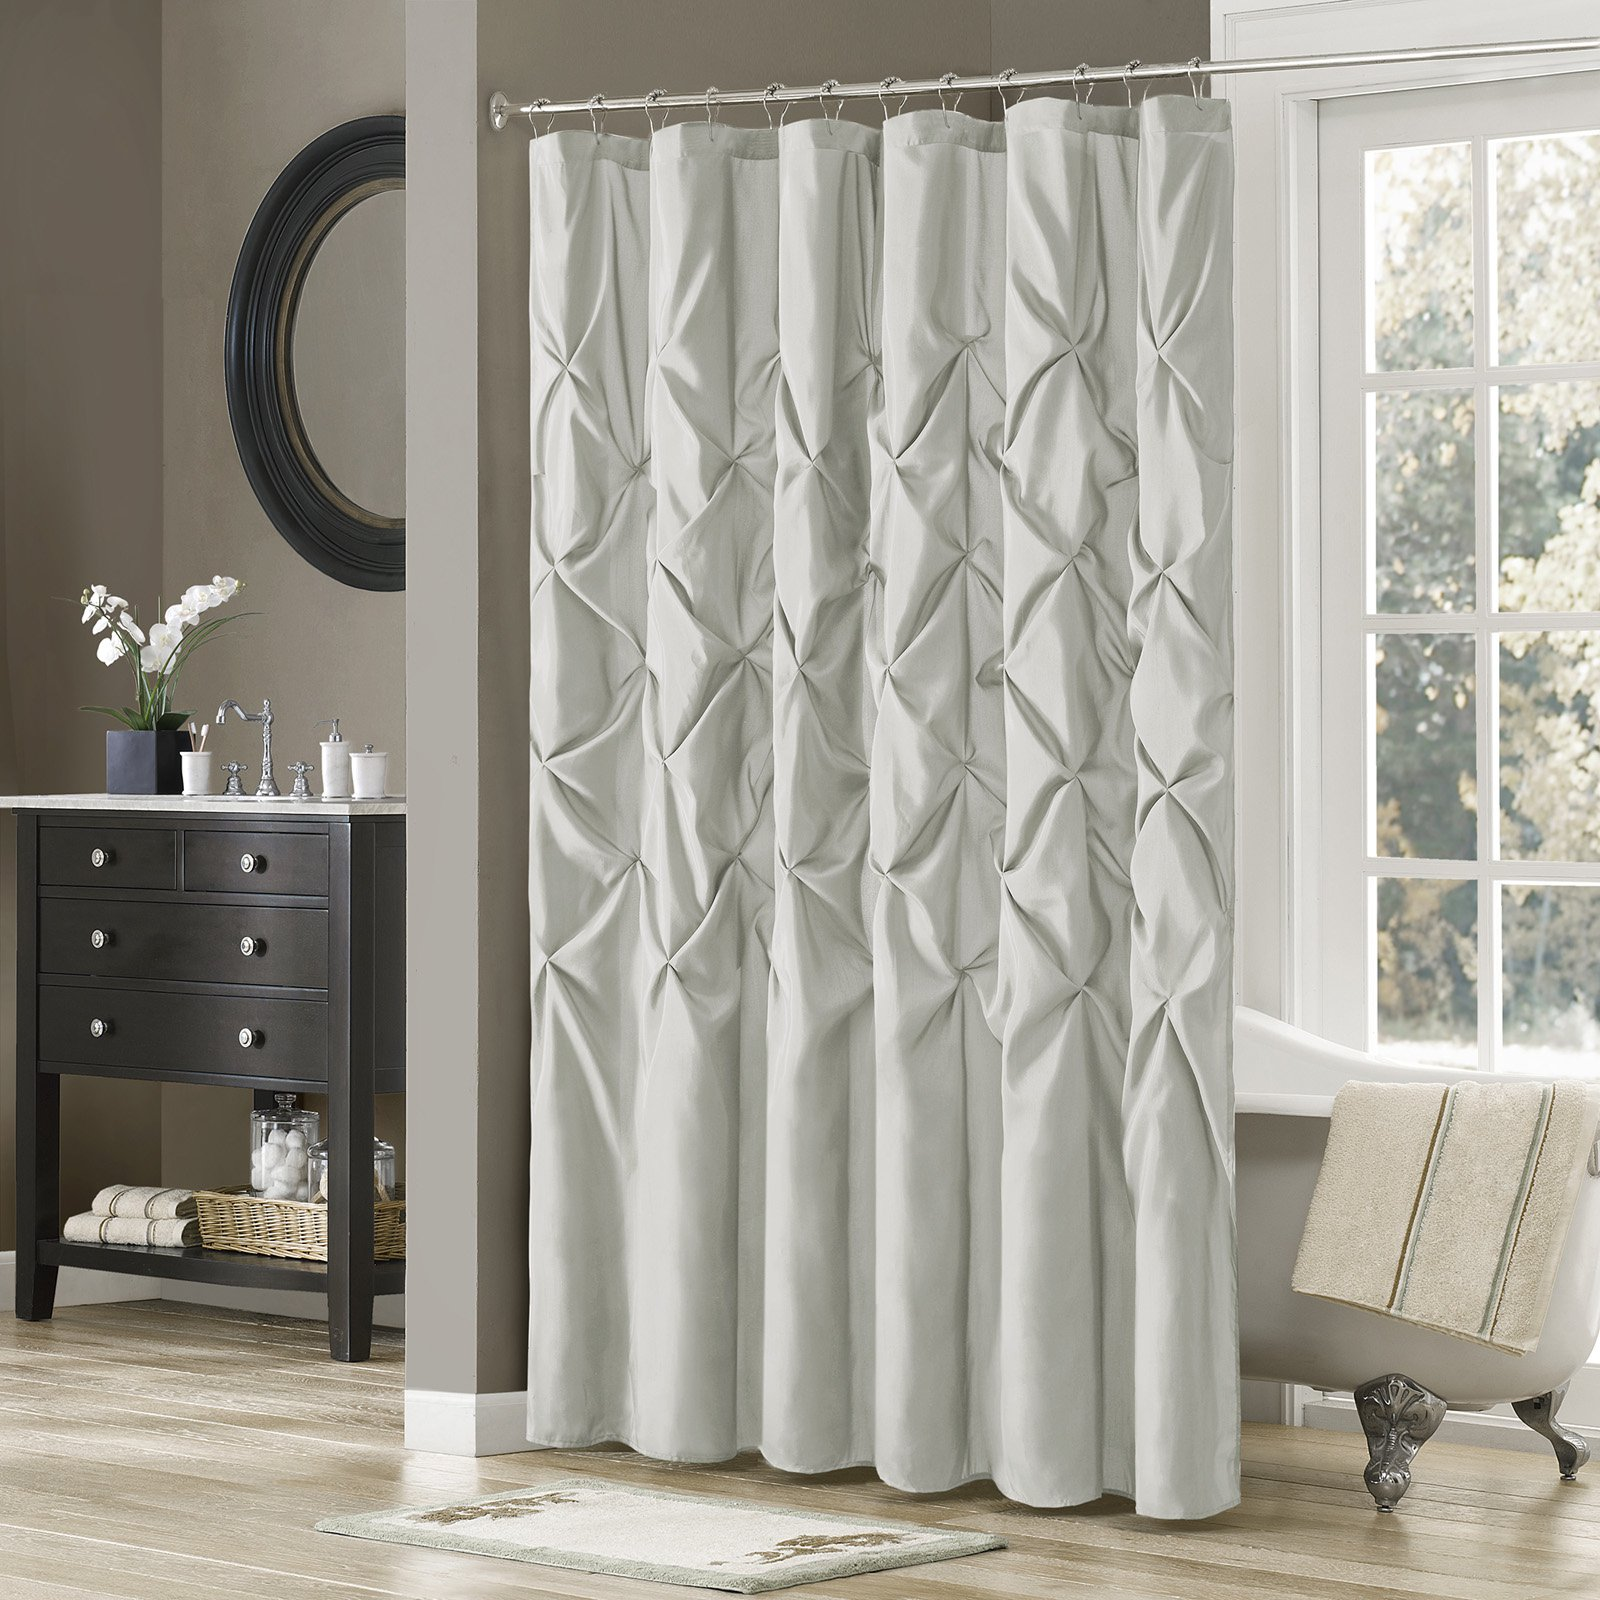 Madison Park Laurel Tufted Faux Silk Shower Curtain Grey Home